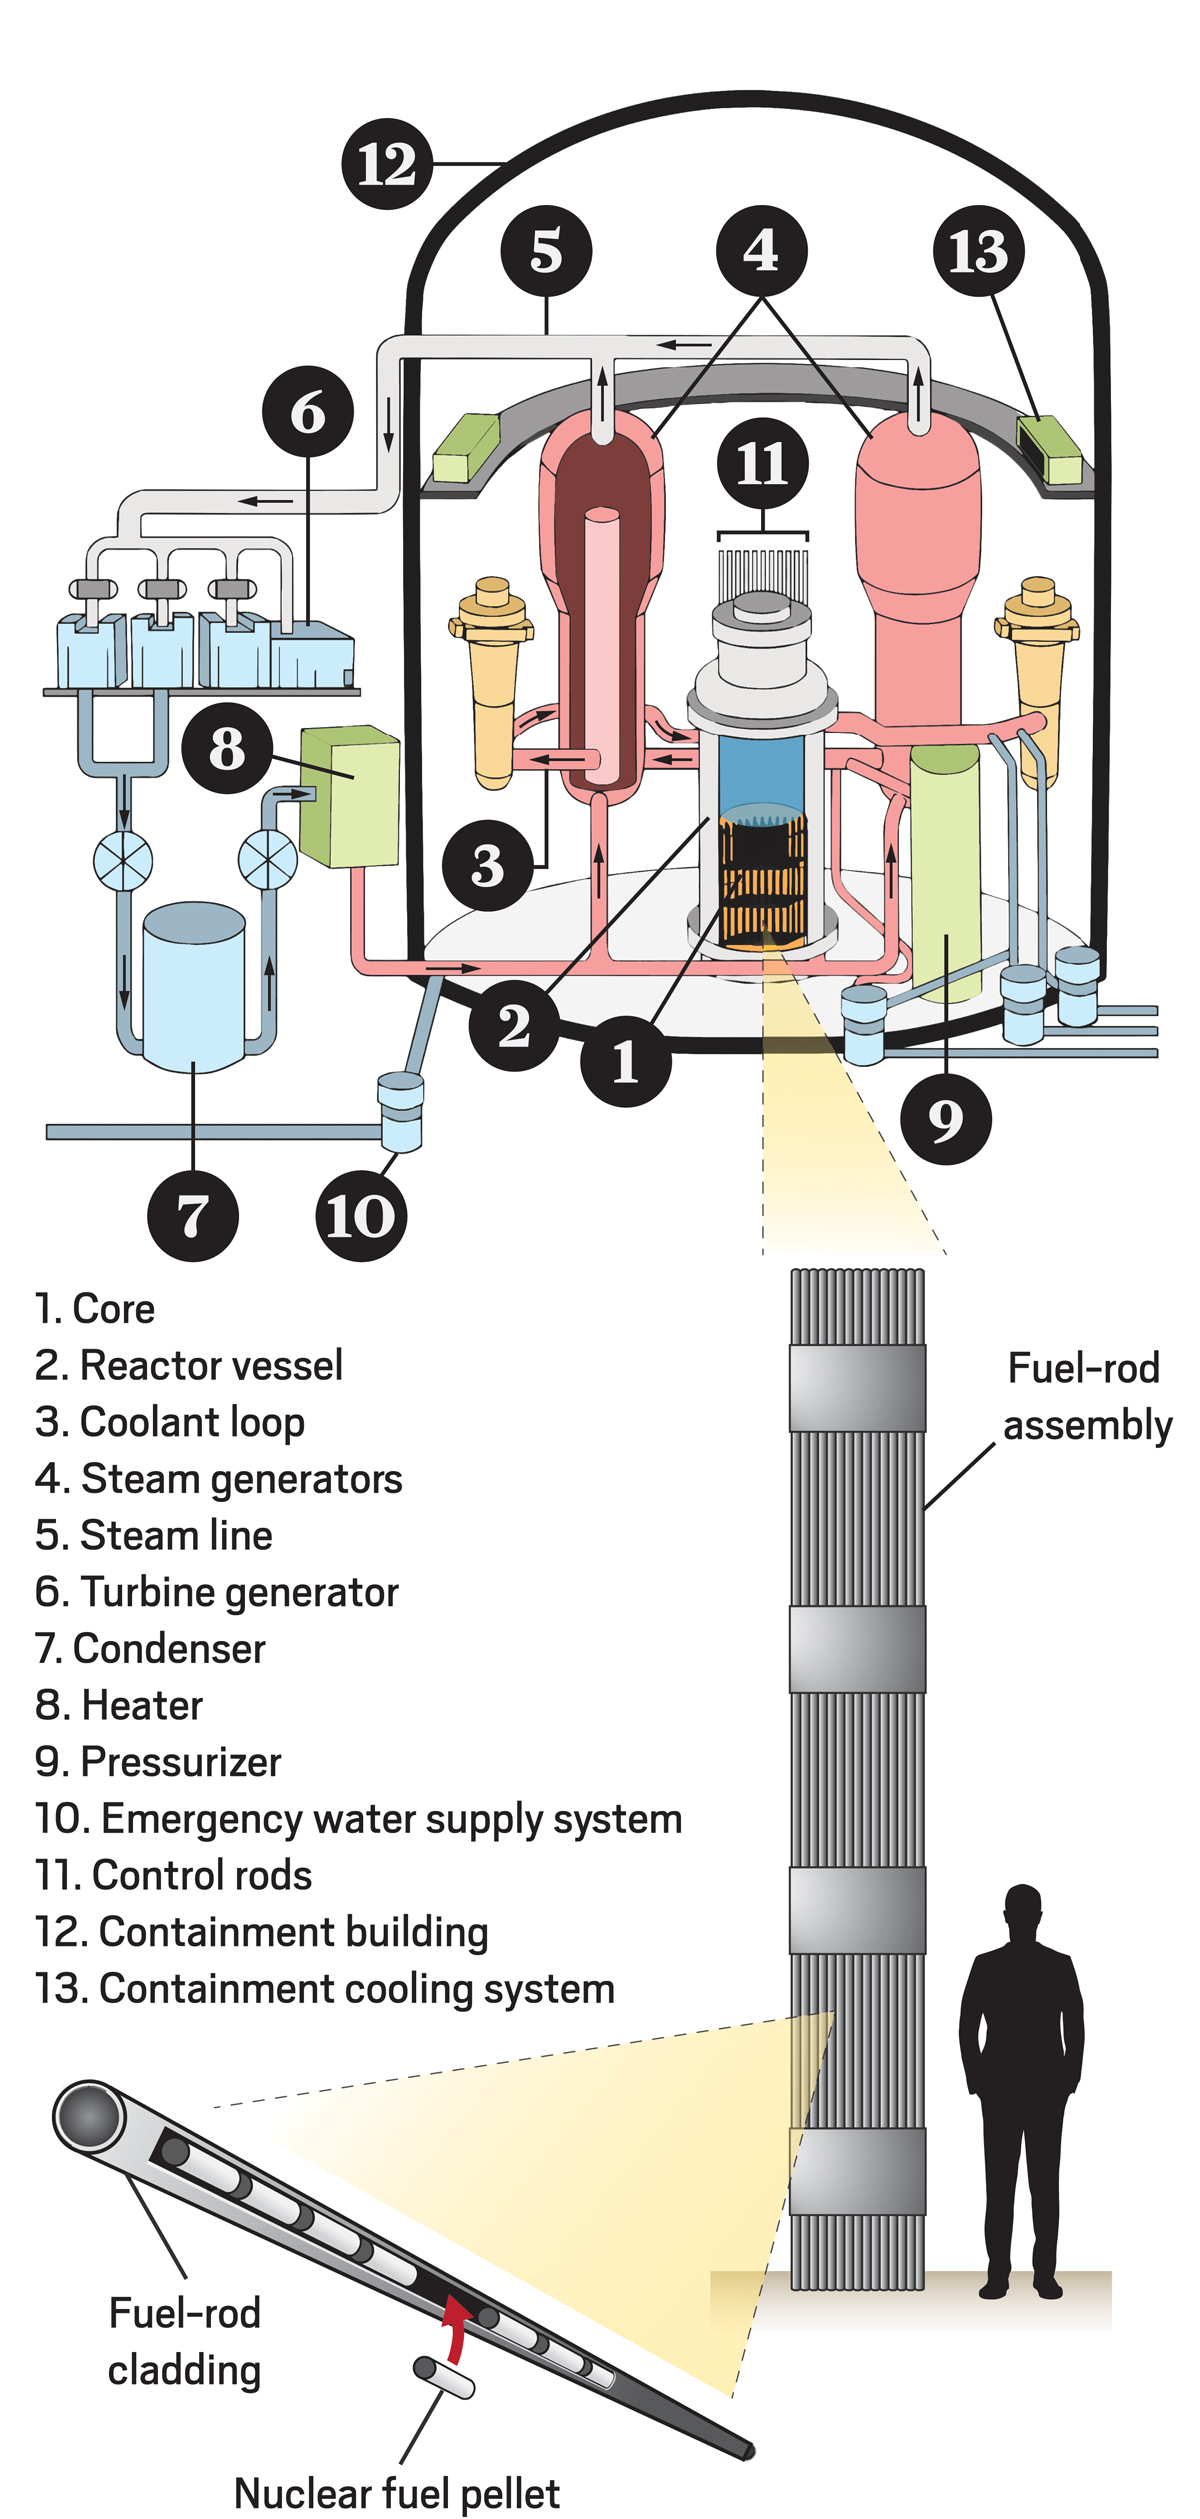 Energy losses within the turbine steam path